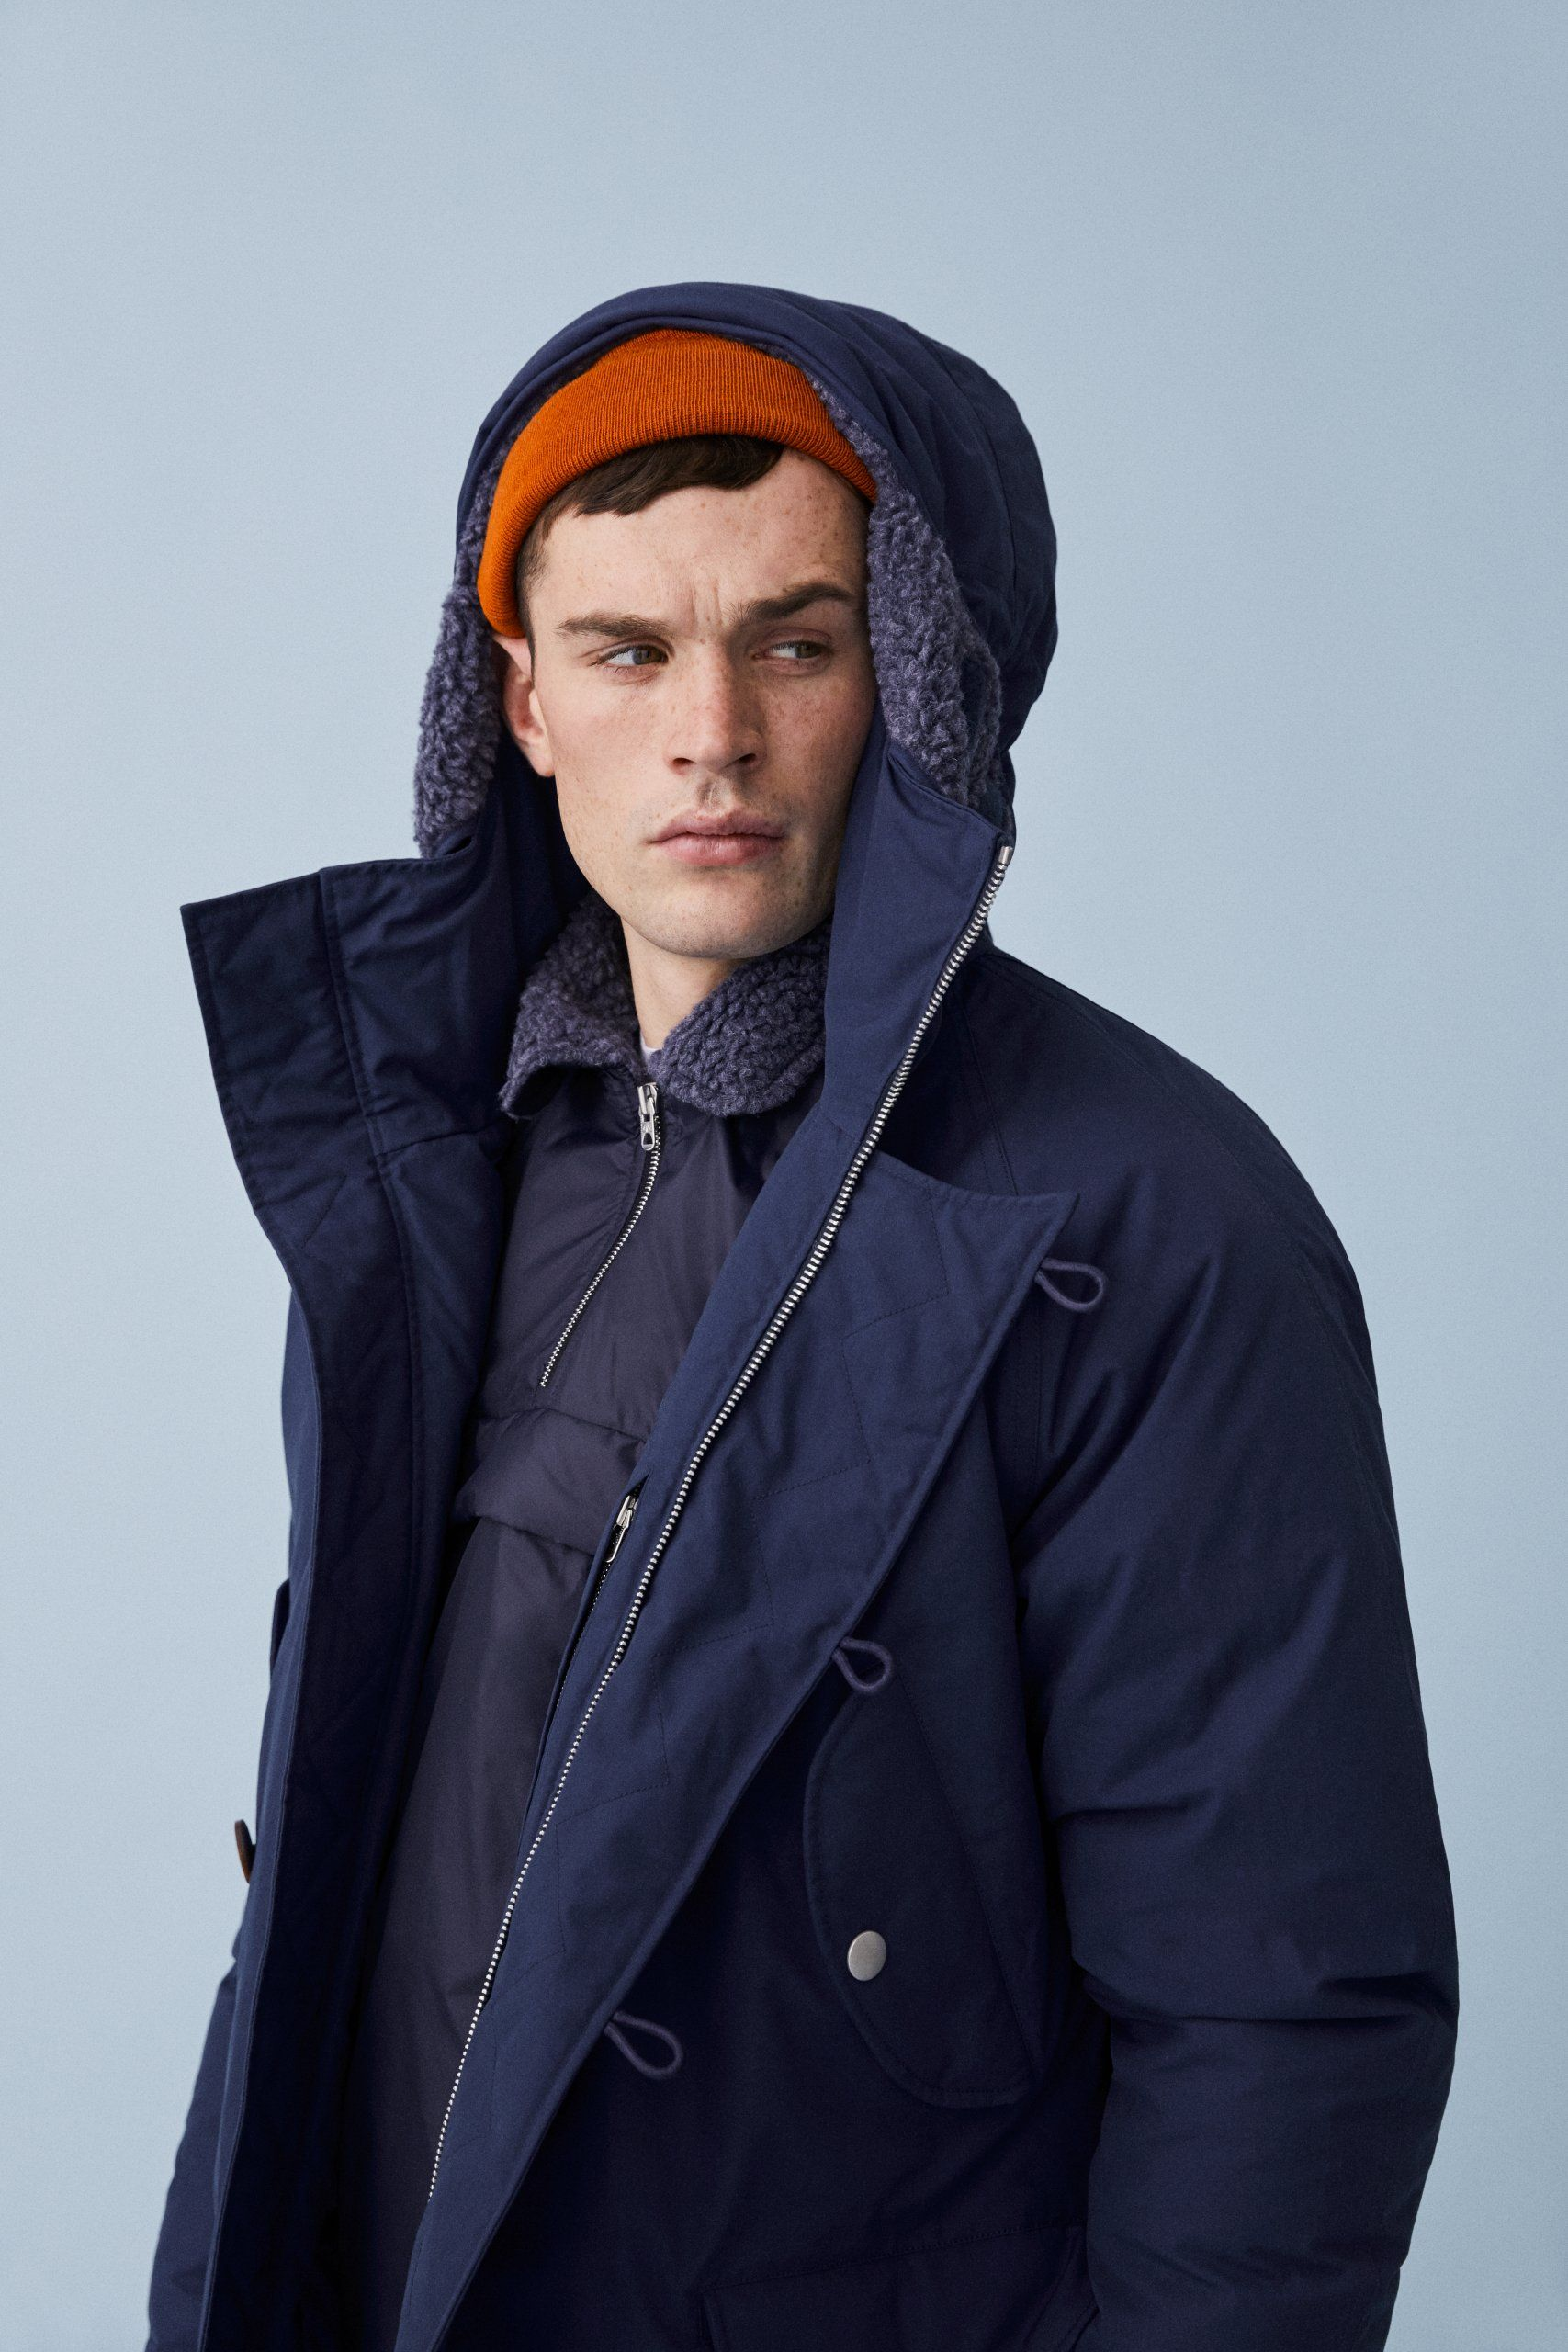 94198c345afc DOWN PARKA  Vintage style meets high tech design in this down parka  fashioned for harsh